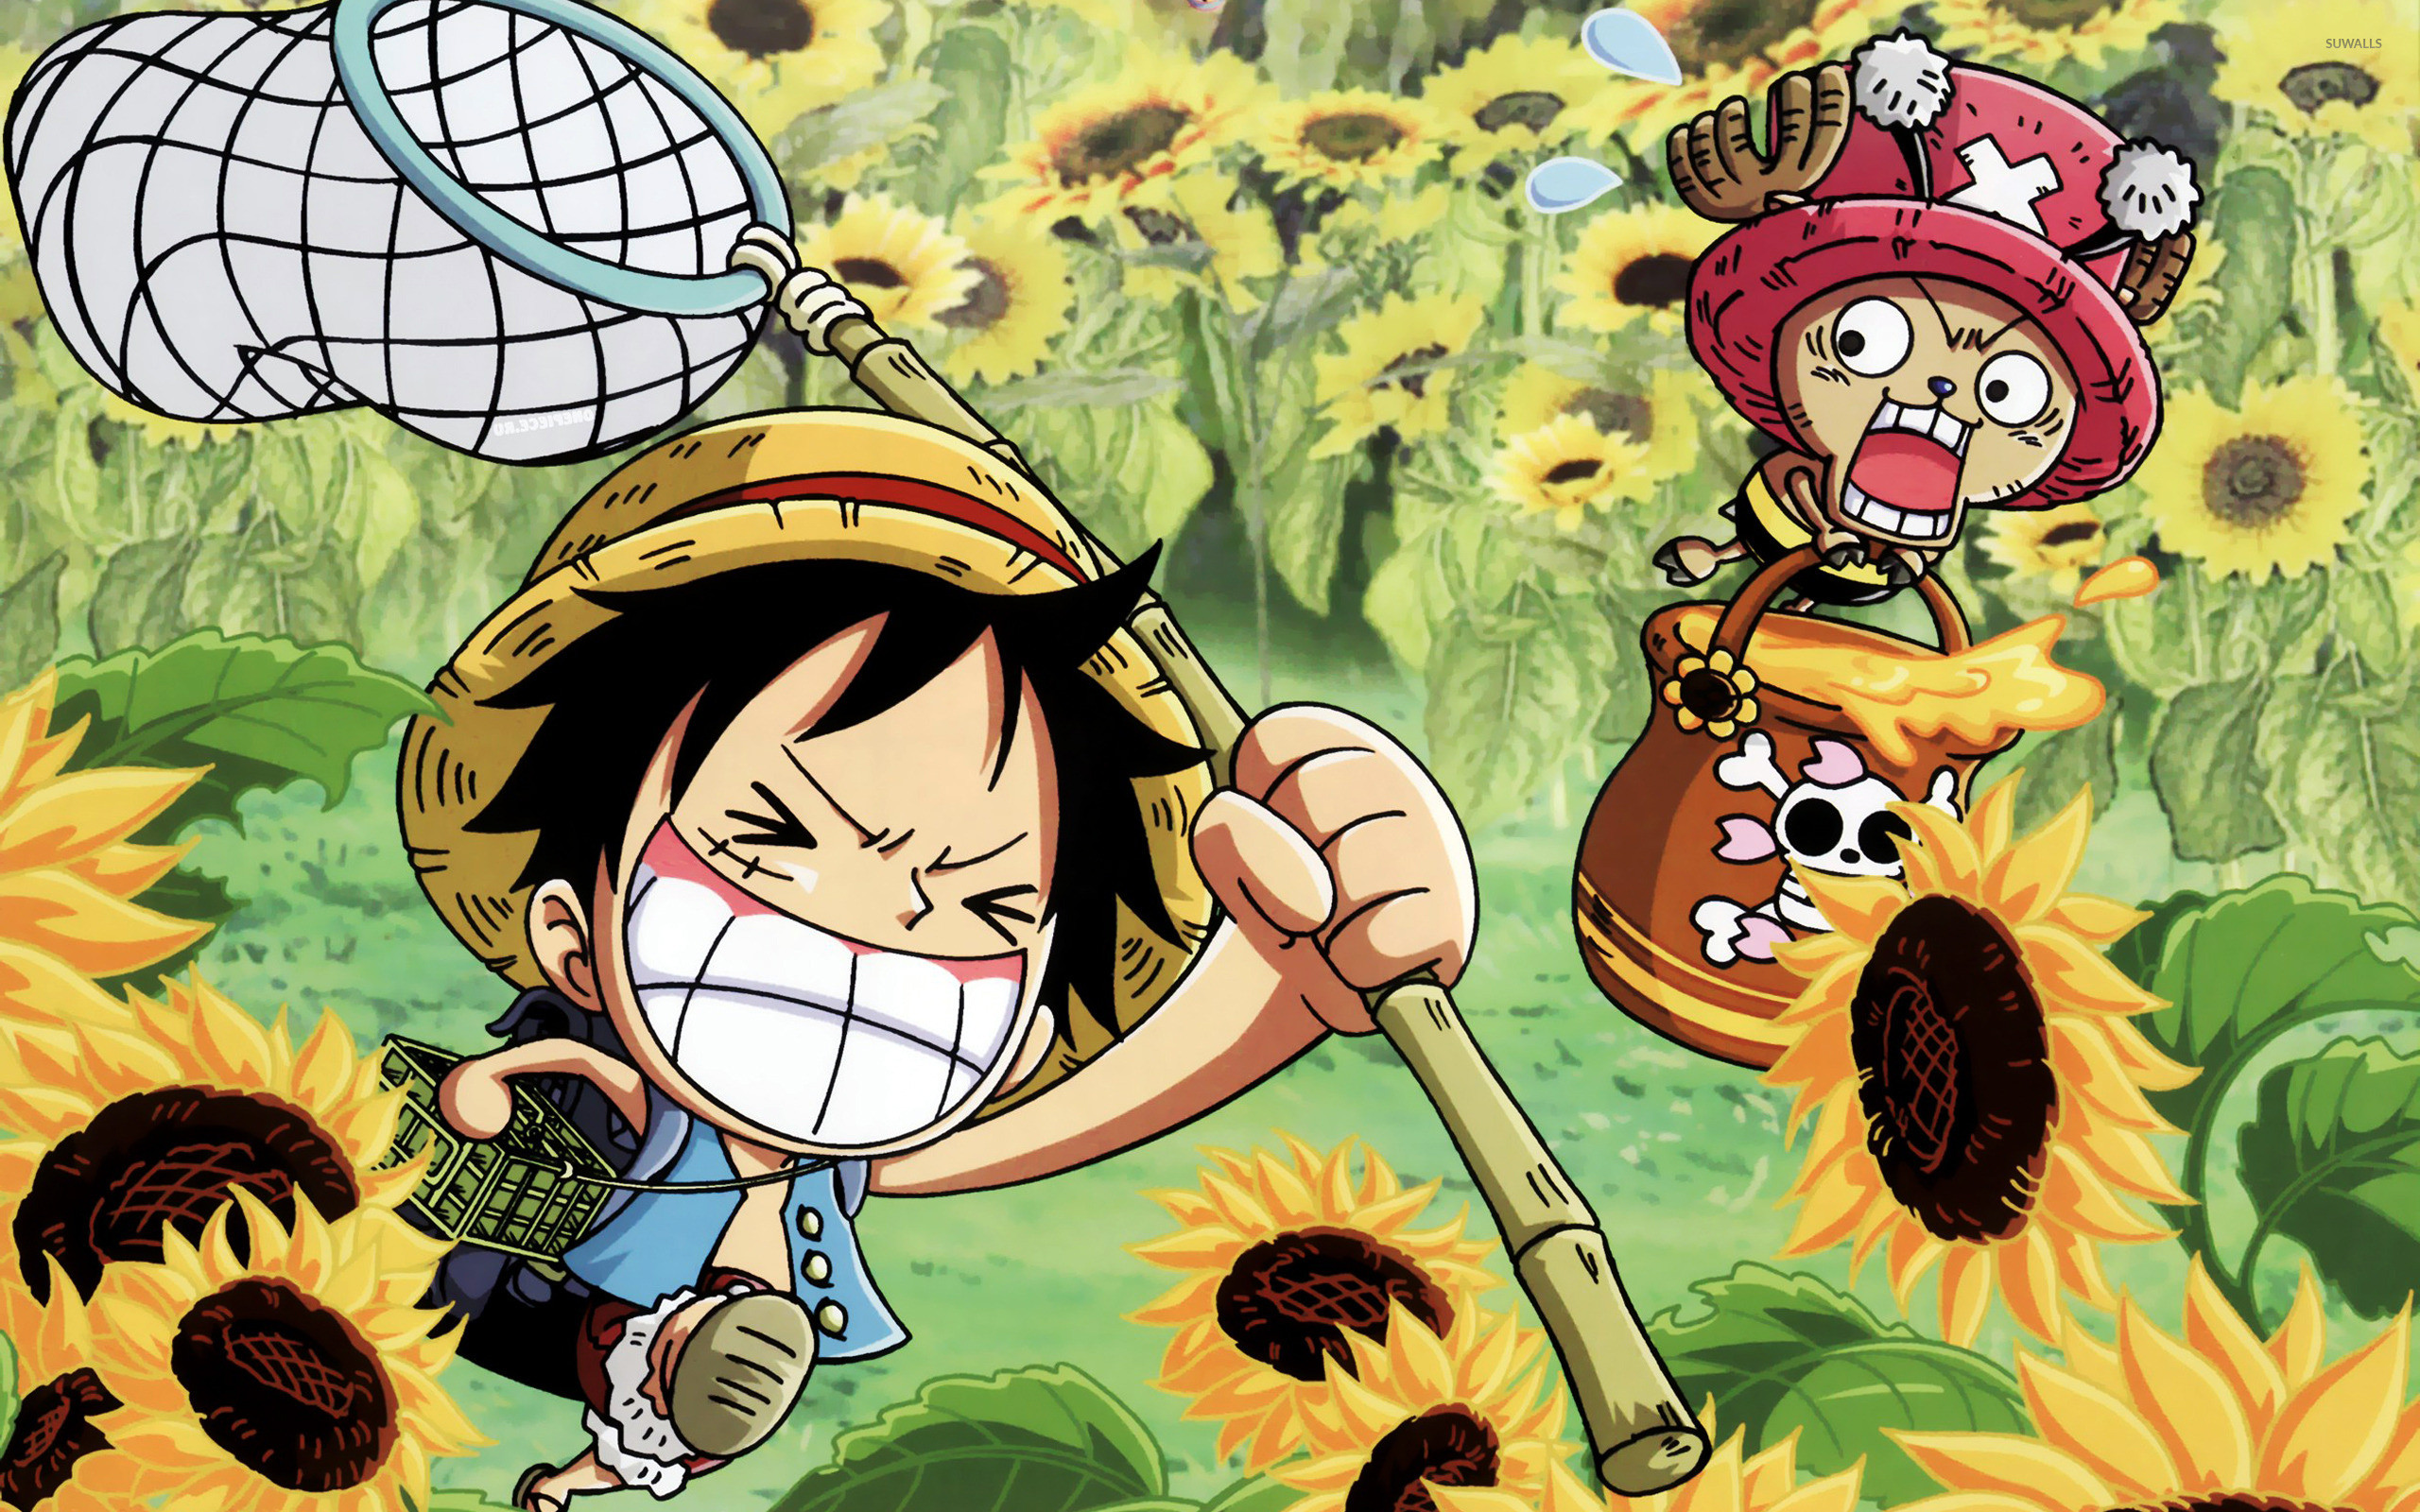 Res: 2560x1600, One Piece [7] wallpaper